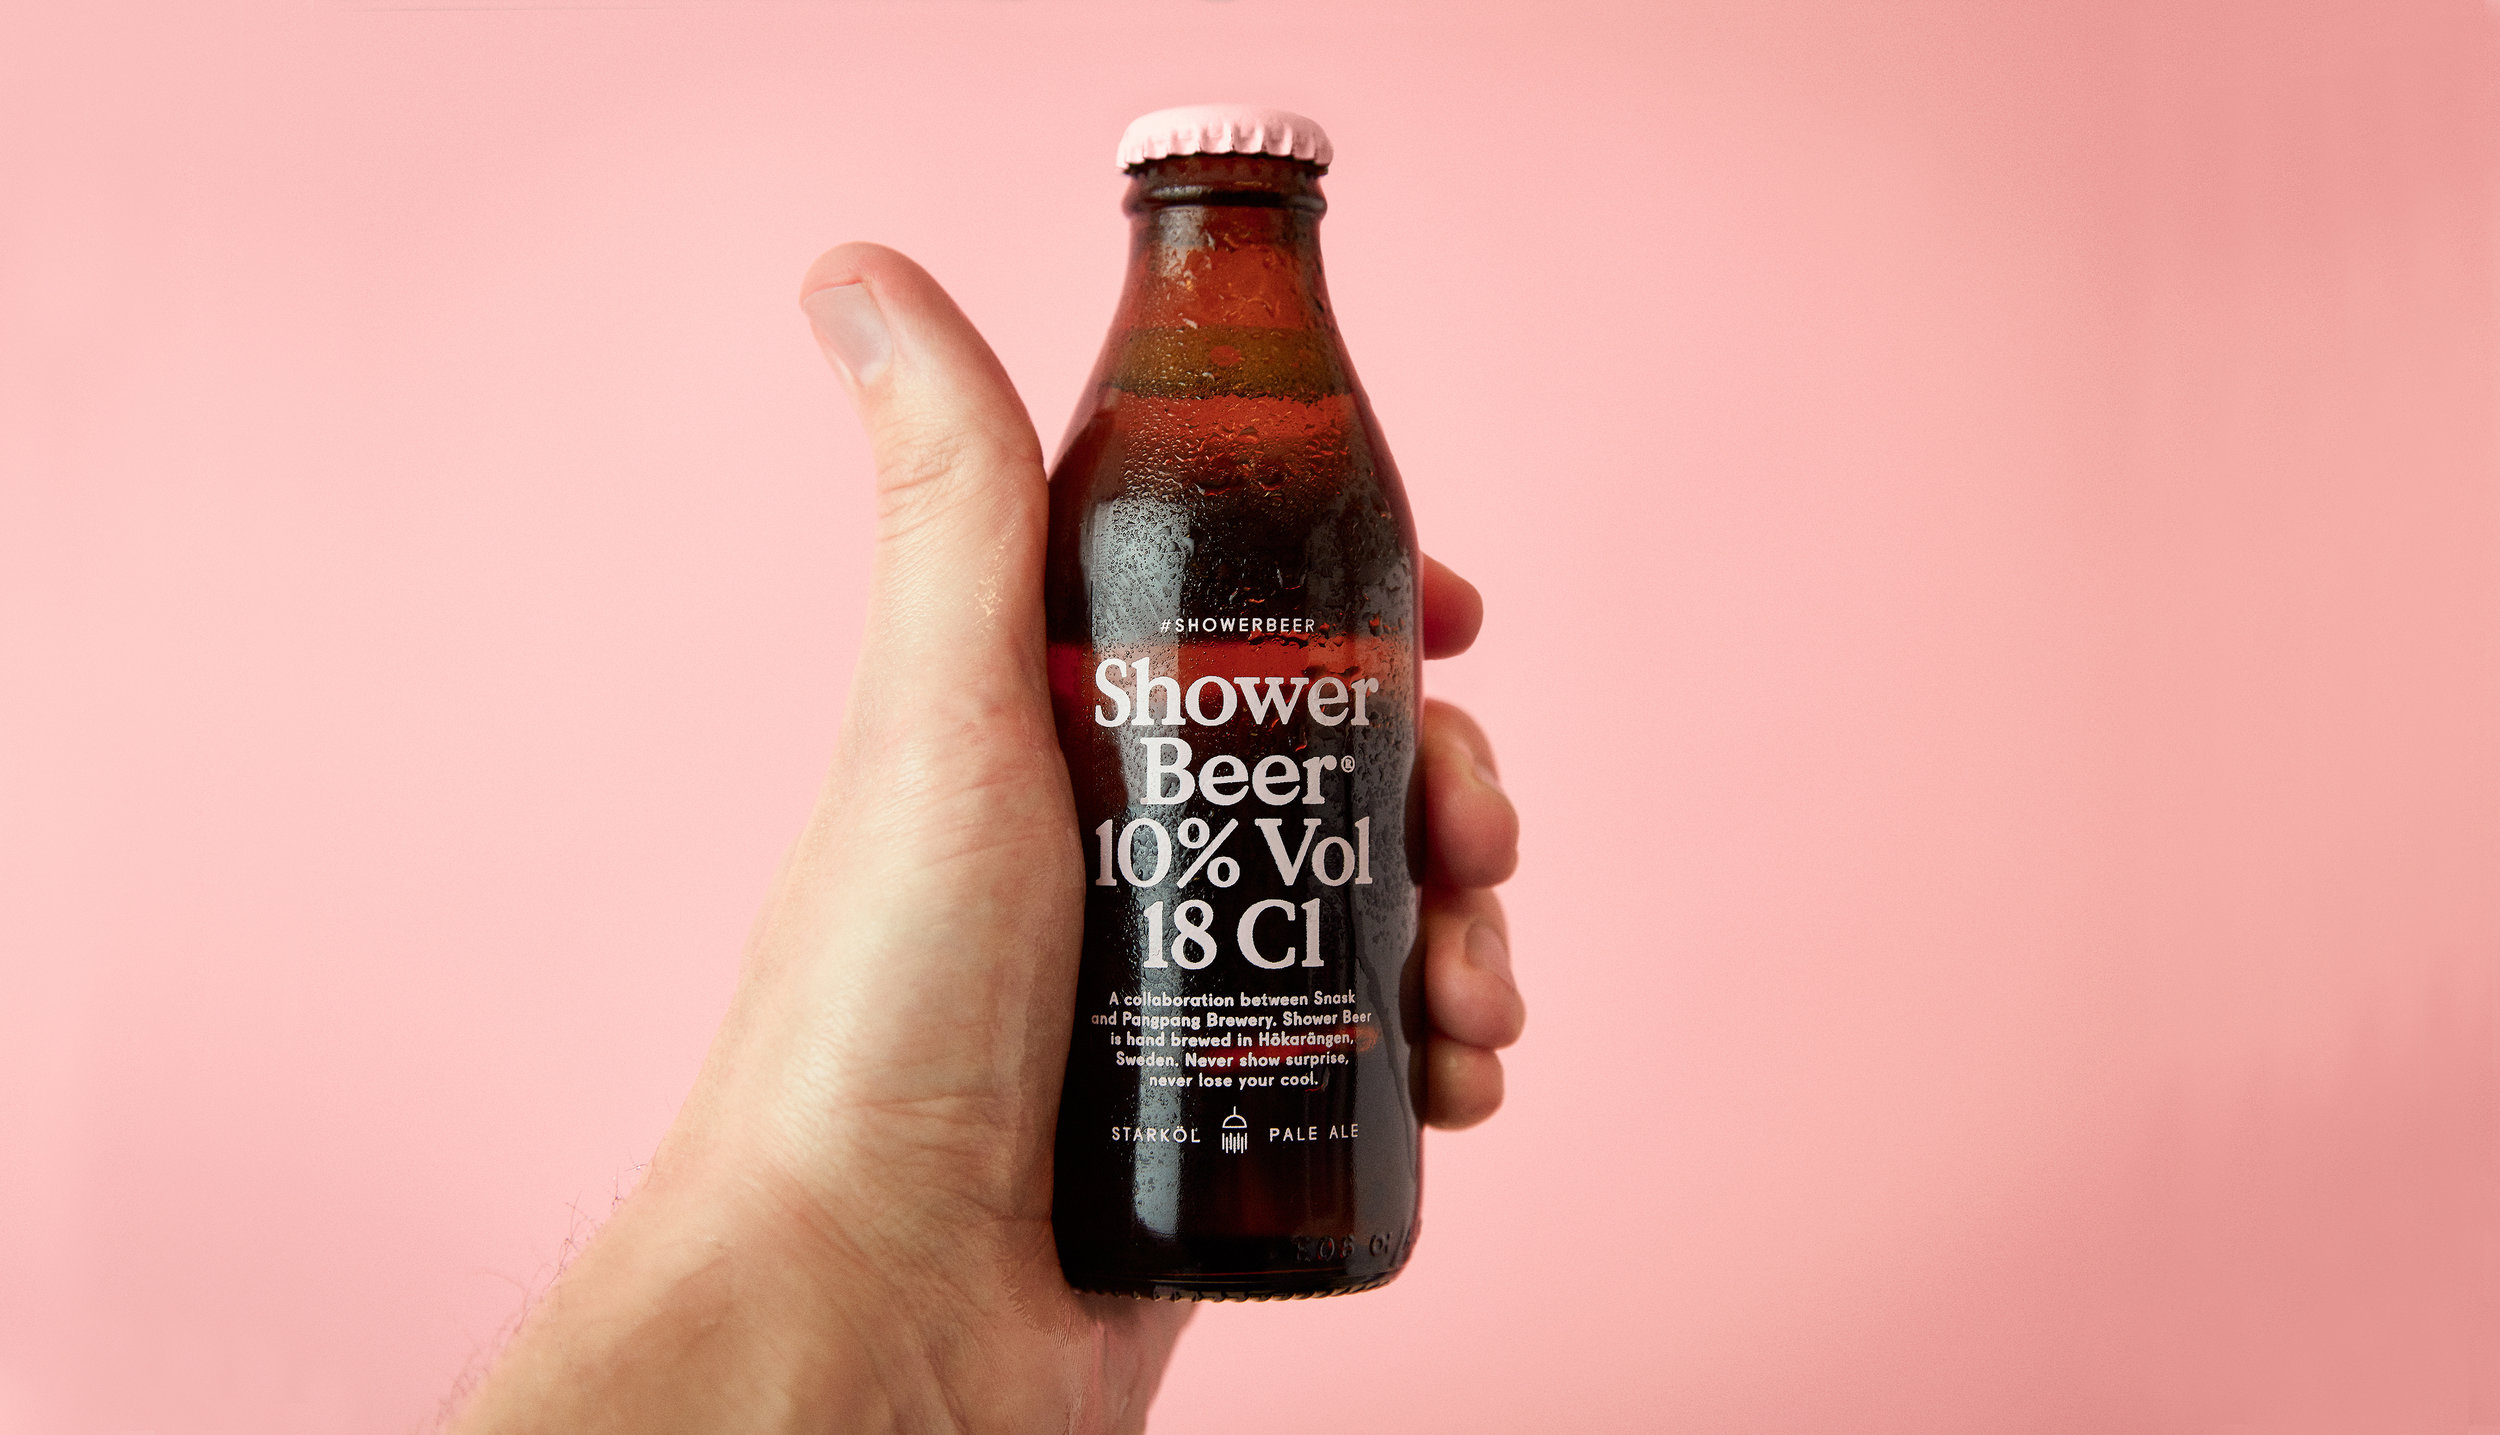 shower-beer_00_bottle_hero3.jpg